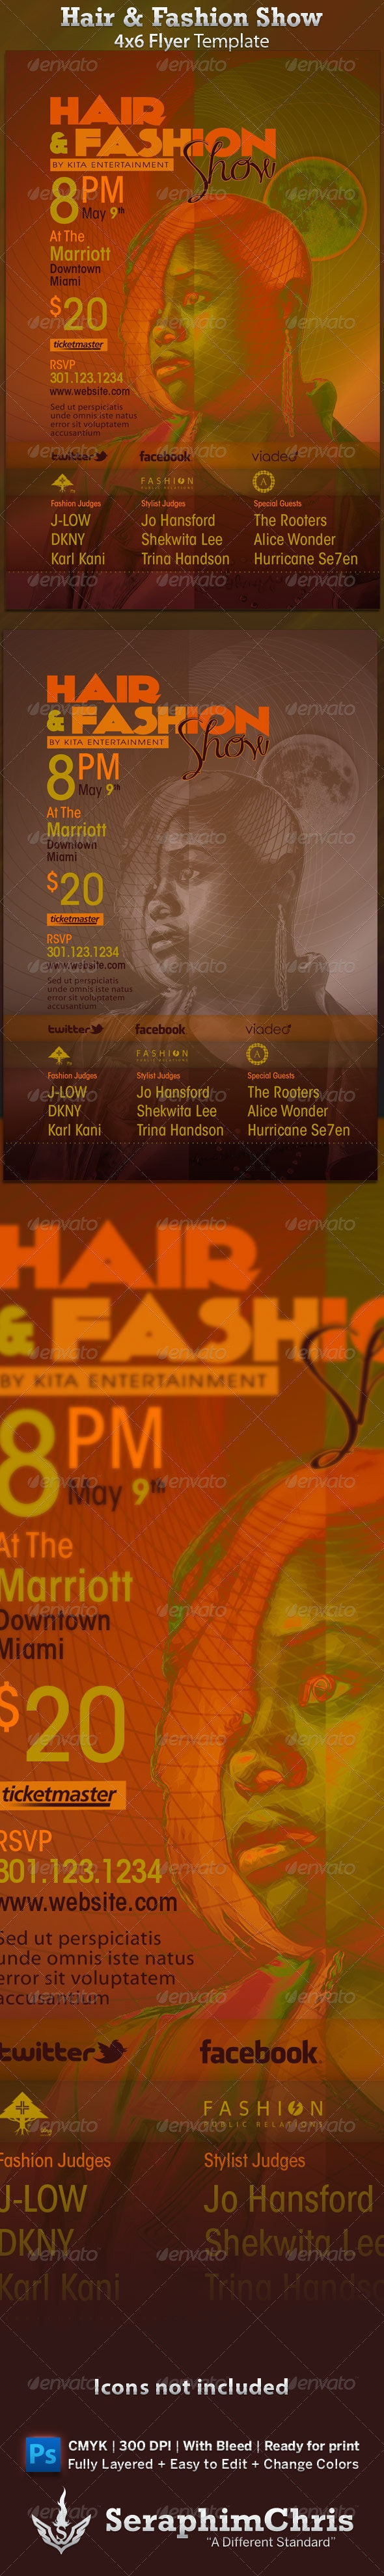 Hair & Fashion Show Flyer Template - Clubs & Parties Events